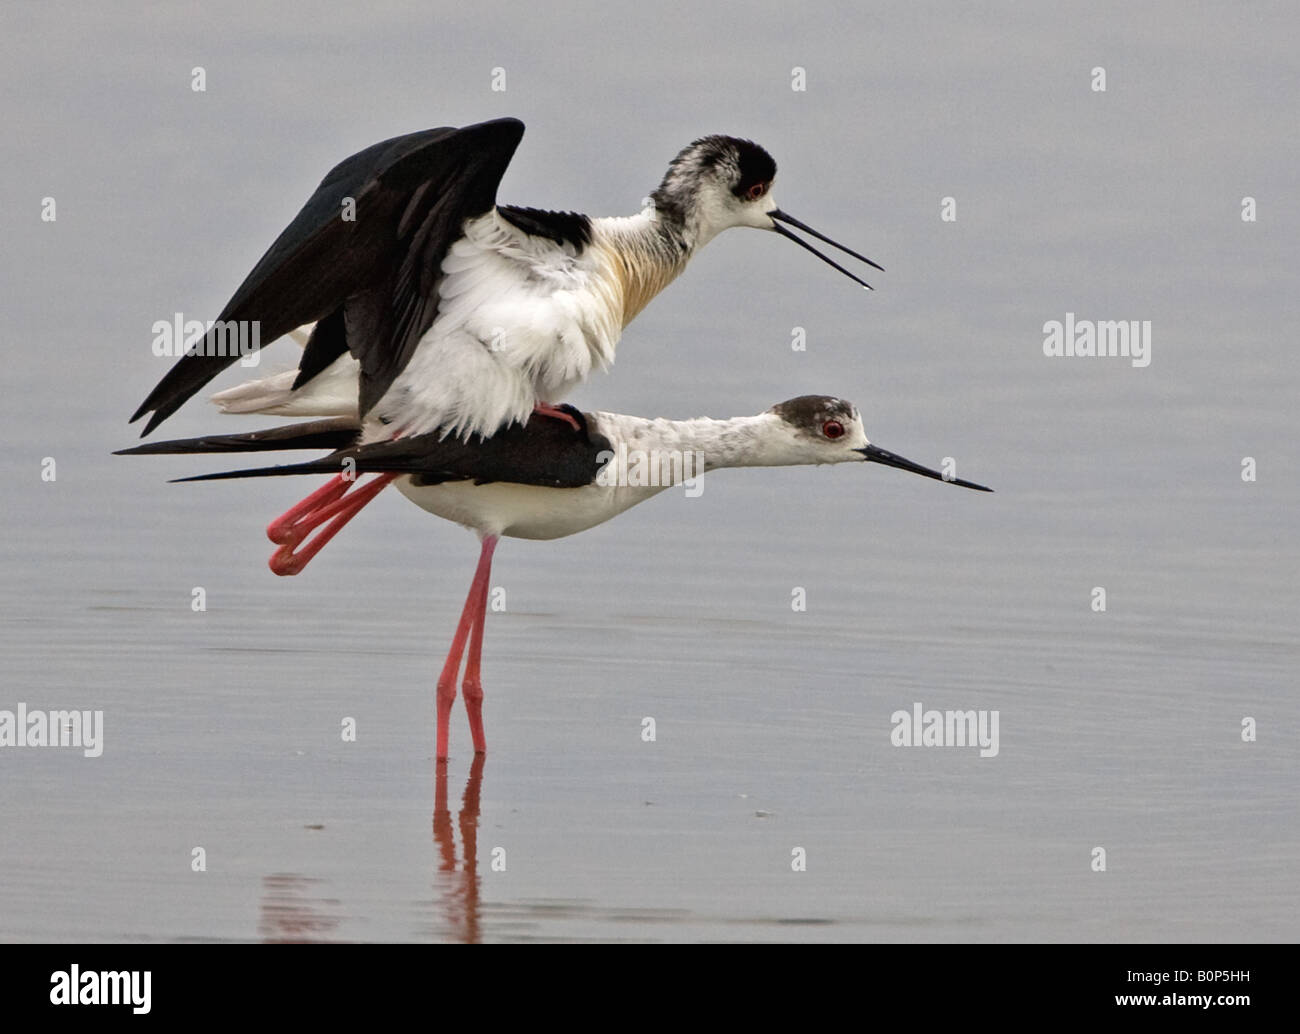 Pair of Black-winged Stilts mating in shallow waters of the Salt Pans in Kolloni, Lesbos, Greece. - Stock Image